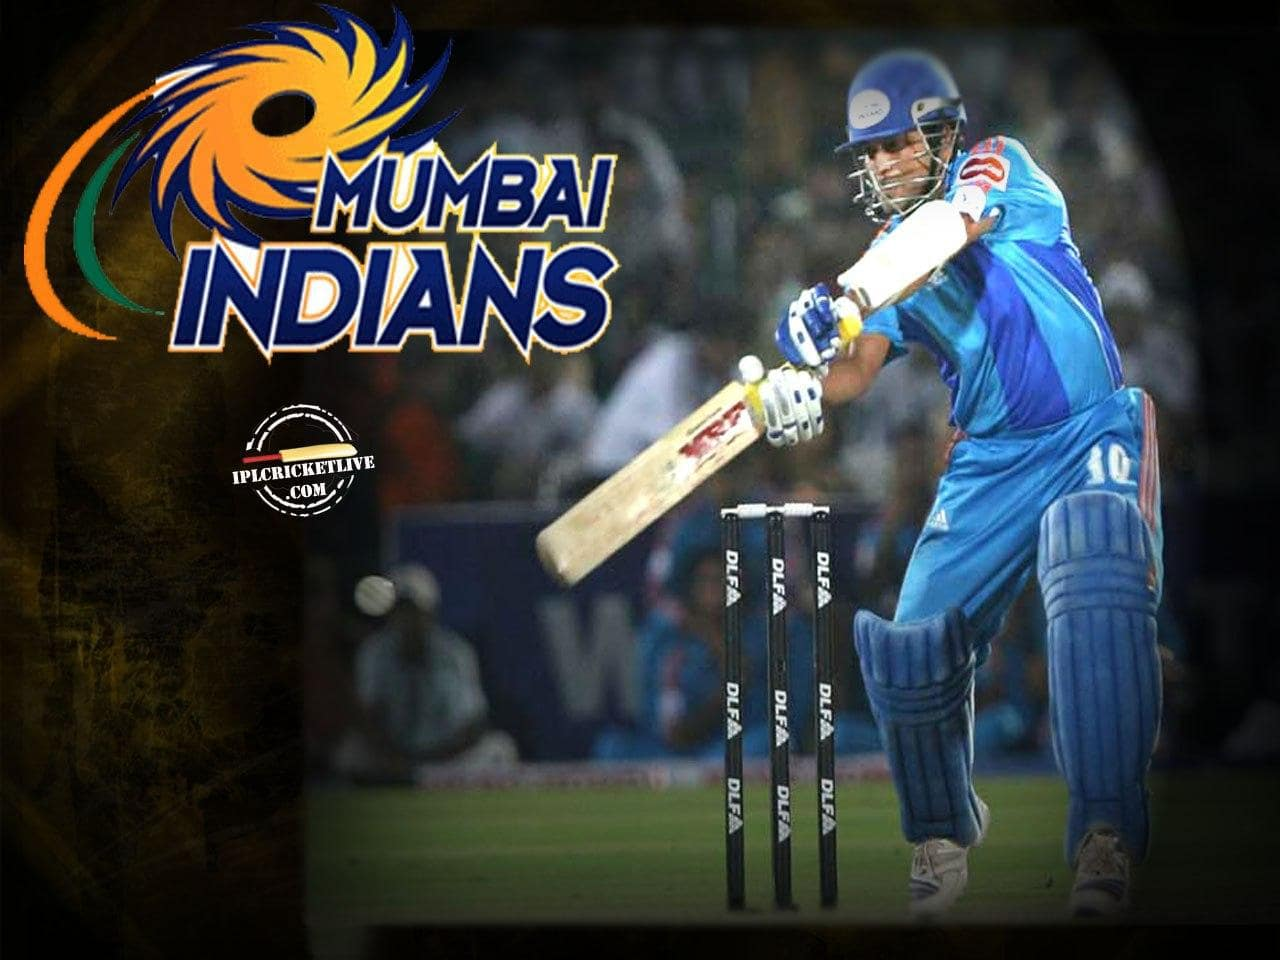 IPL-2019-Indian-Premier-League-2019-IPL-Mumbai-Indians-